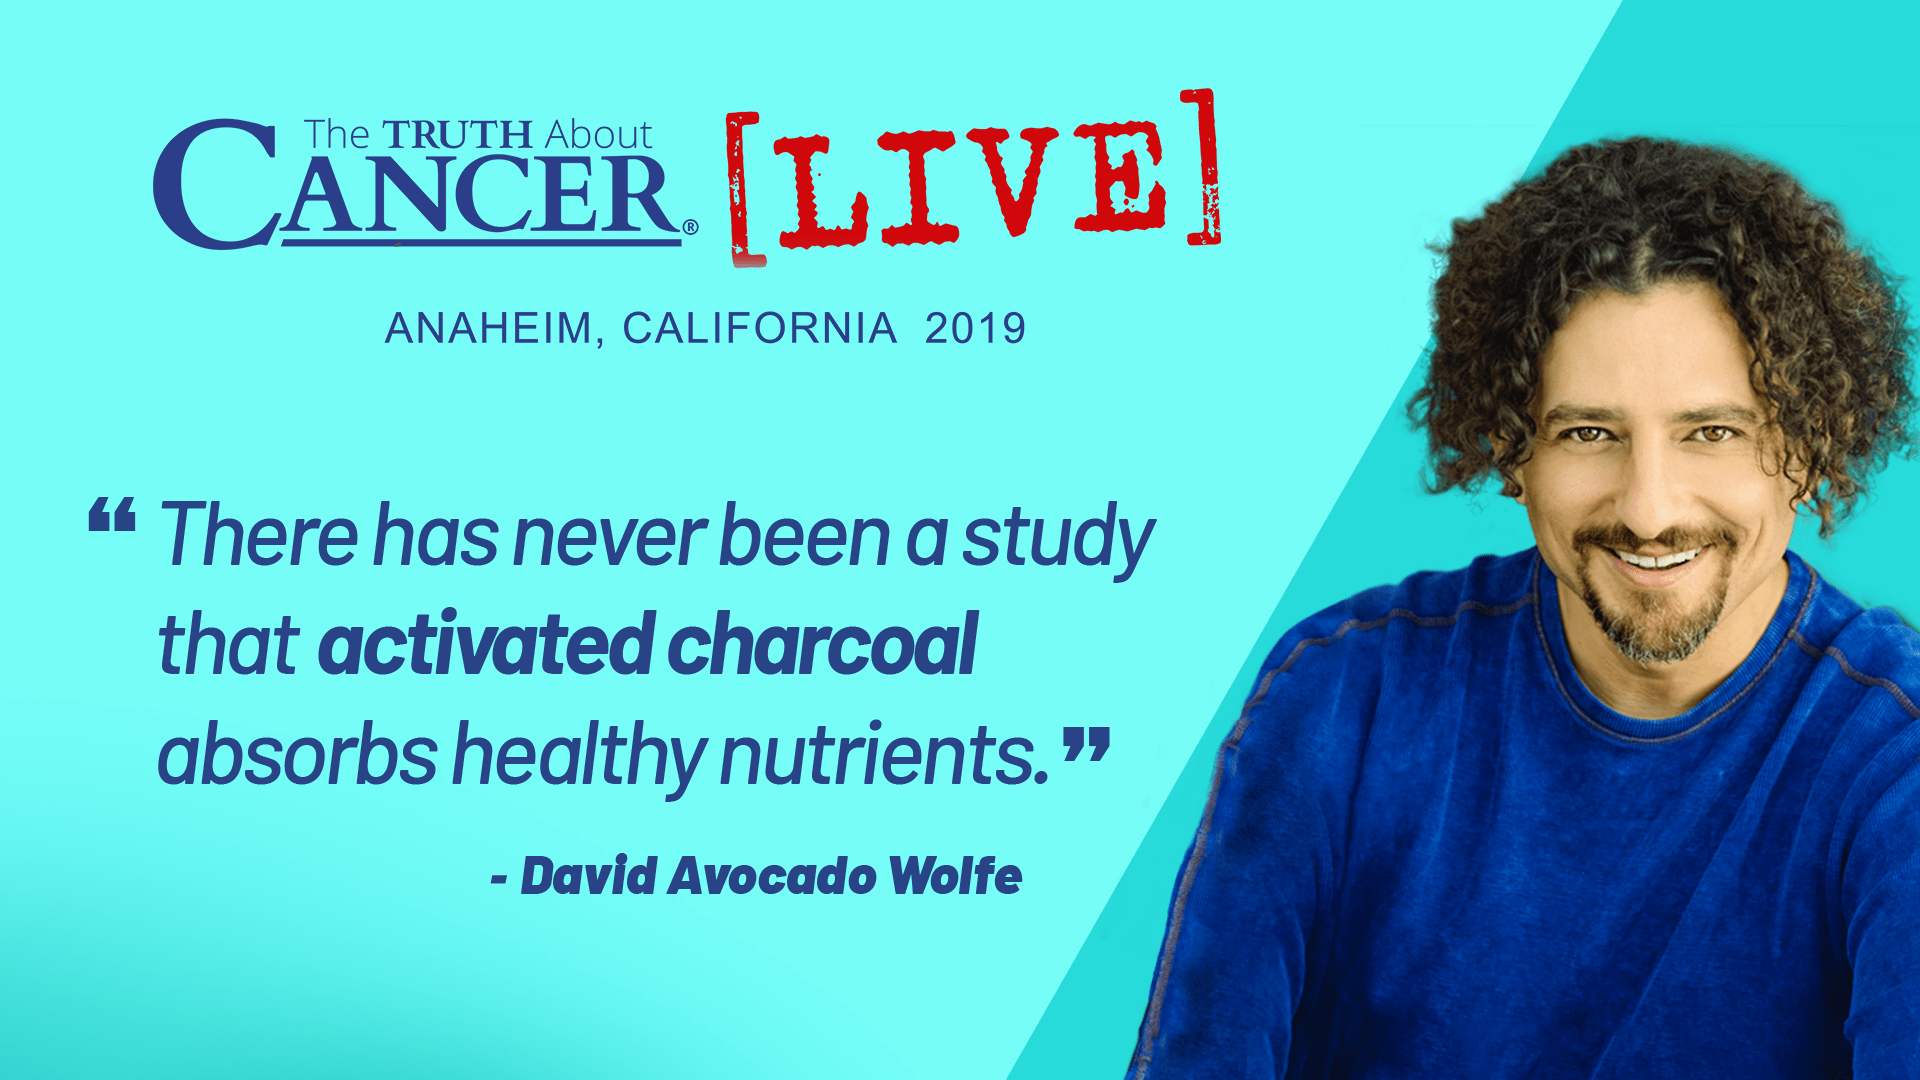 David Avocado Wolfe on Activated Charcoal